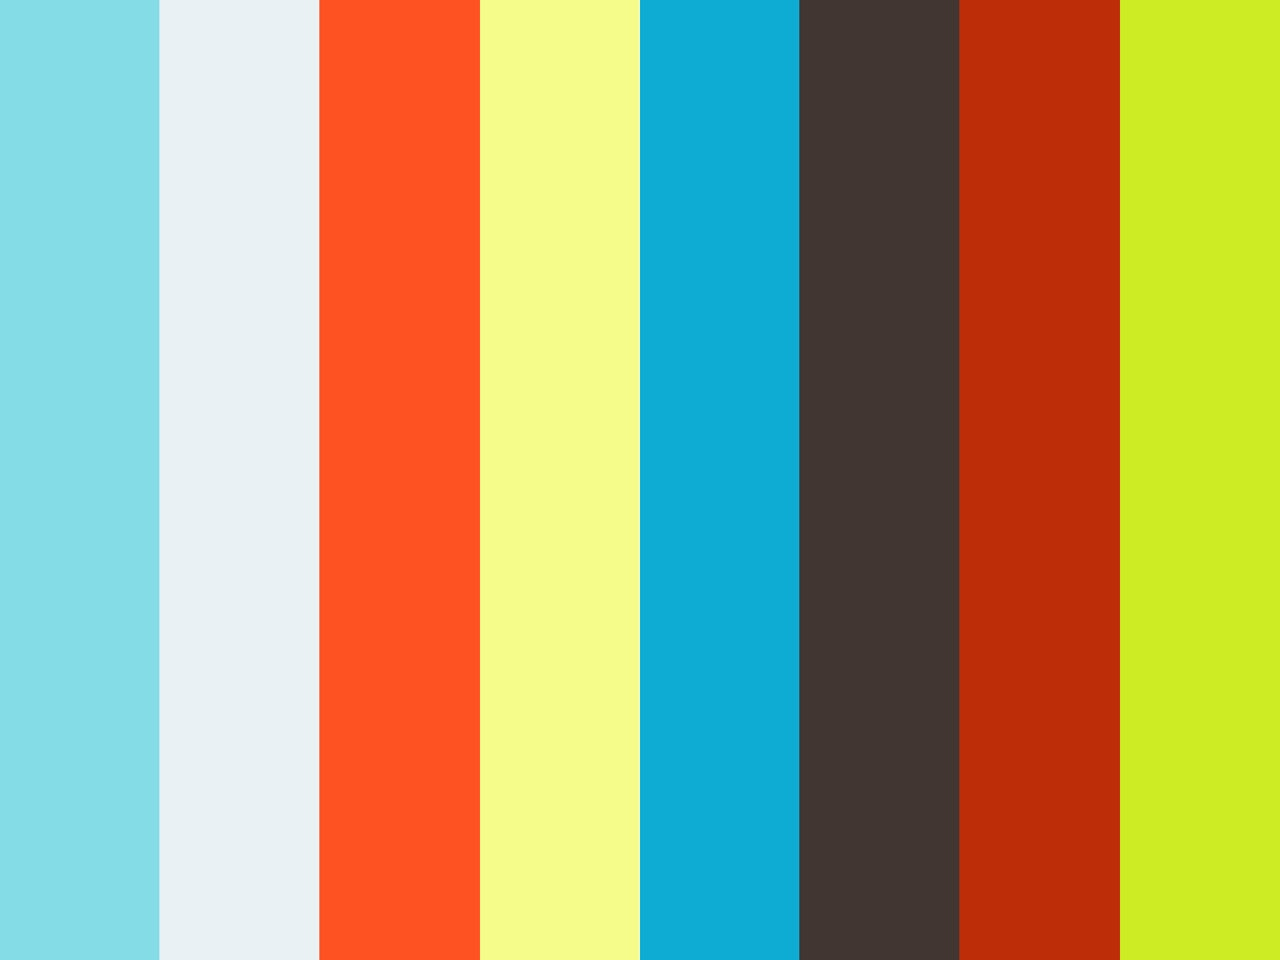 23 B Social Effects Of The Great Depression On Vimeo